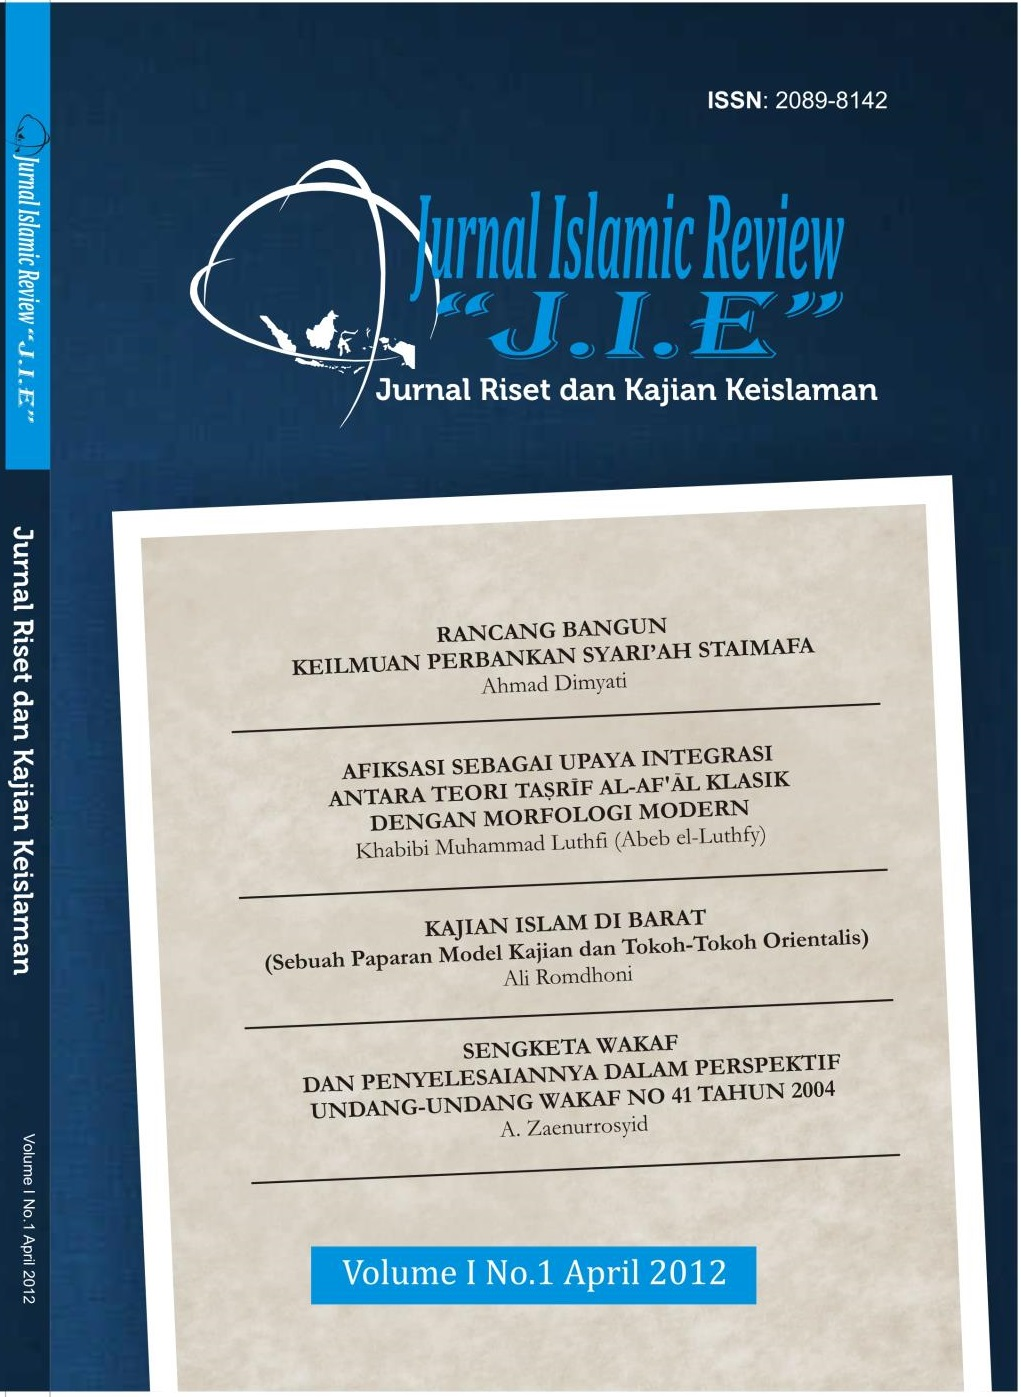 Jurnal Islamic Review IPMAFA Pati